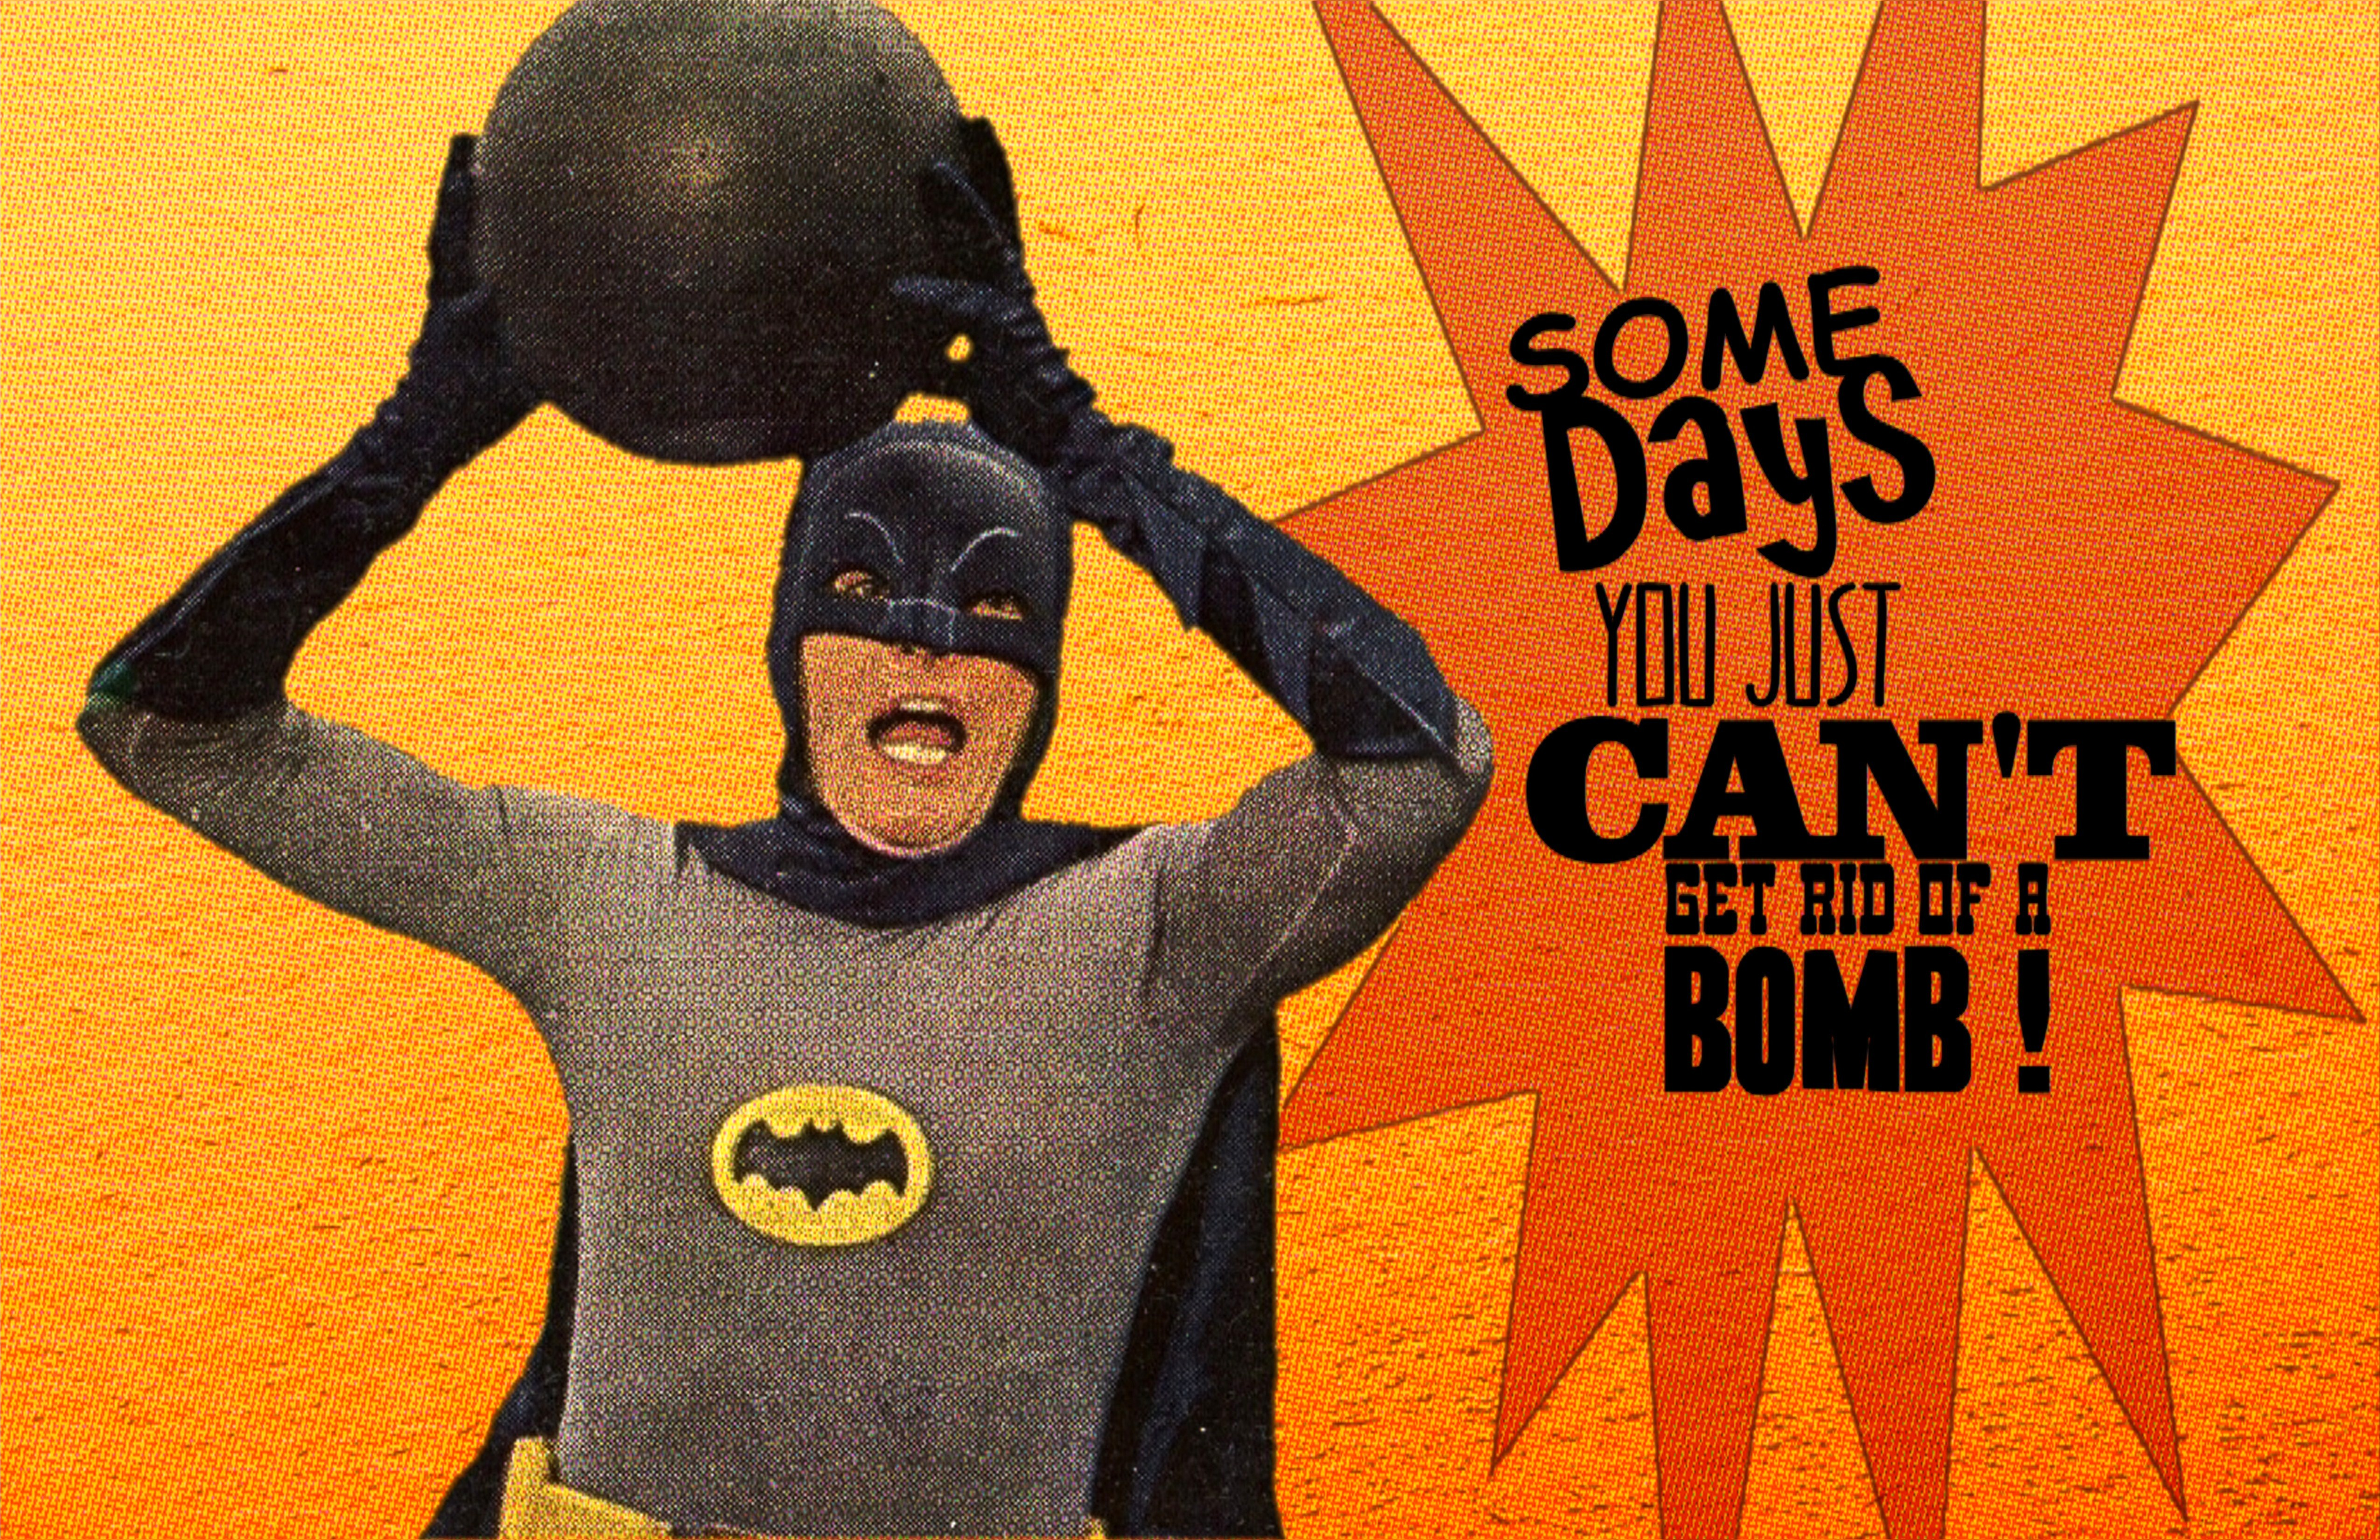 some days you just can't get rid of a bomb.jpg